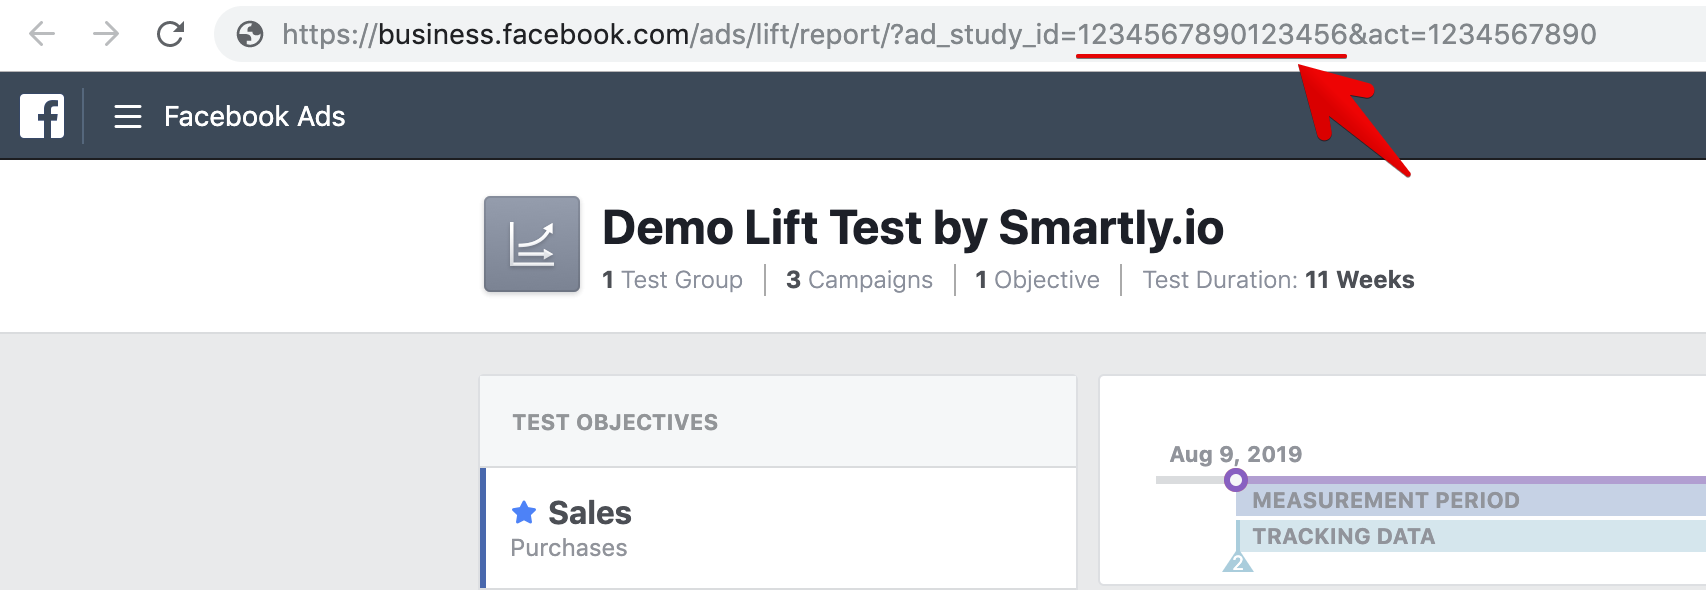 What Facebook ad testing looks like on Business Manager - and how to find the Ad Study ID from the URL